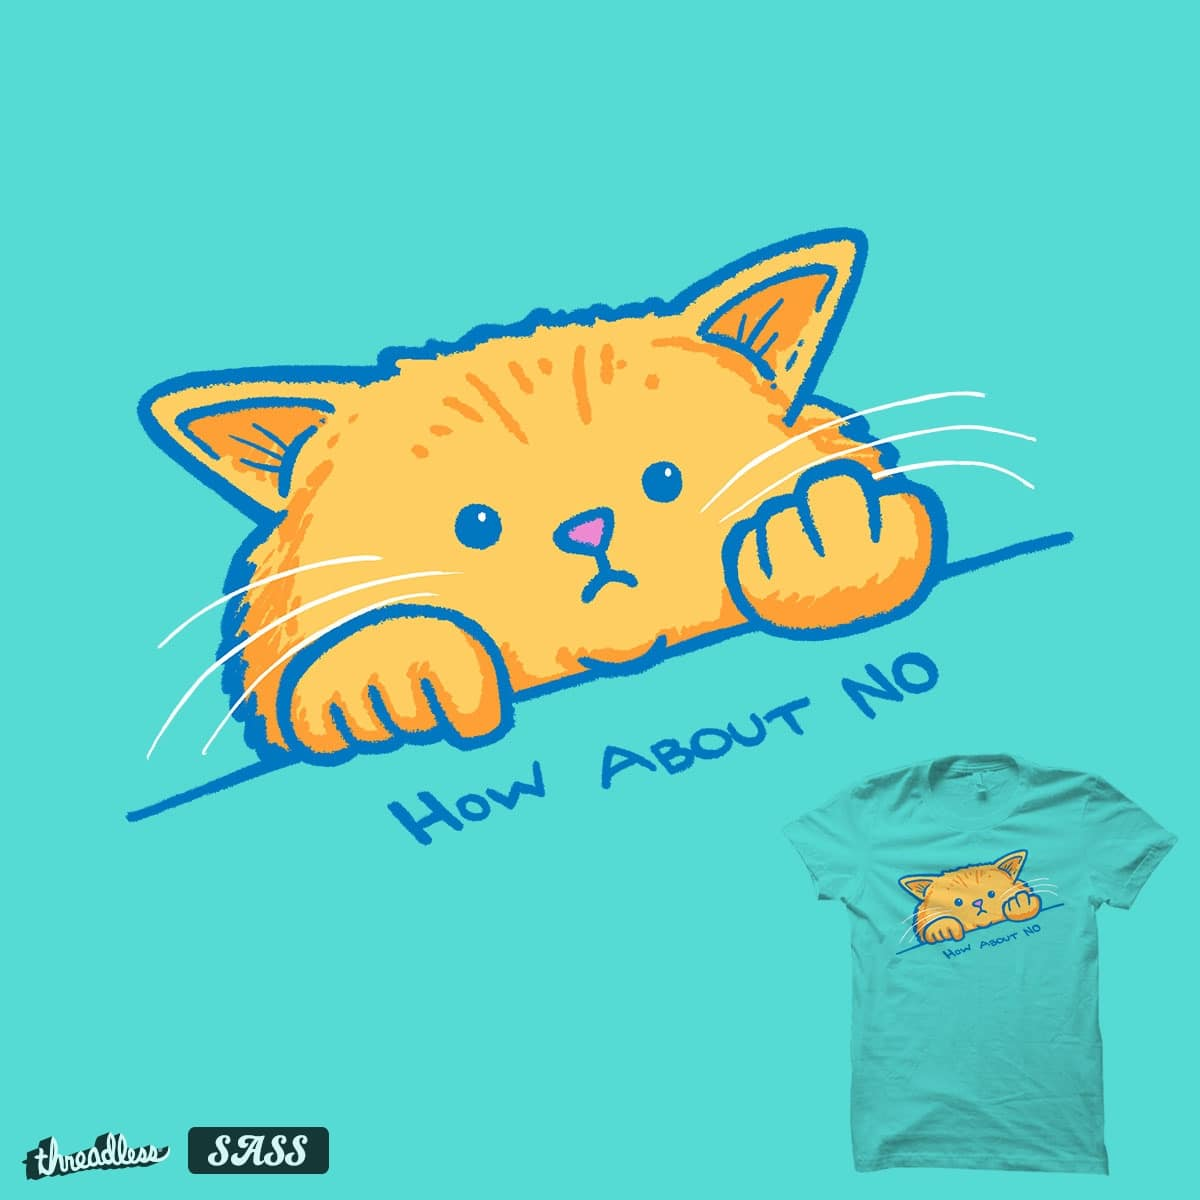 How about no by nickv47 on Threadless